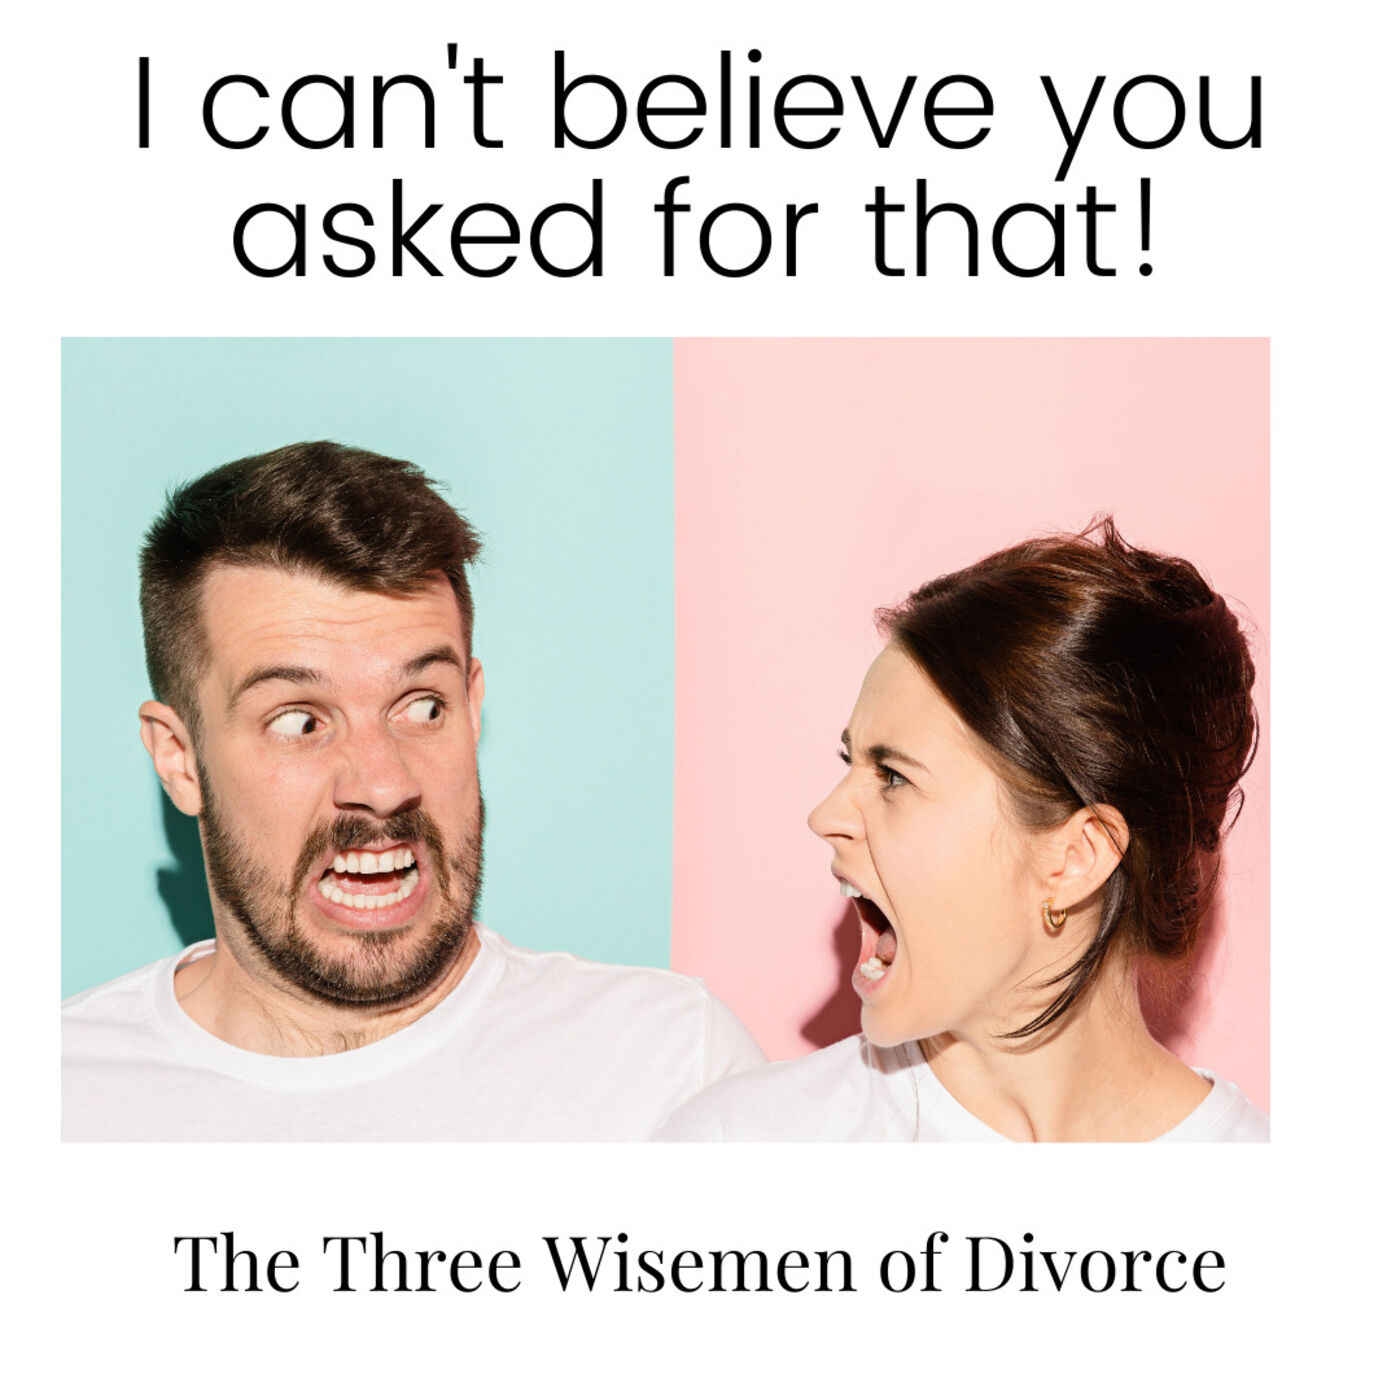 I can't believe you asked for that! Reacting to insulting proposals in divorce negotiations